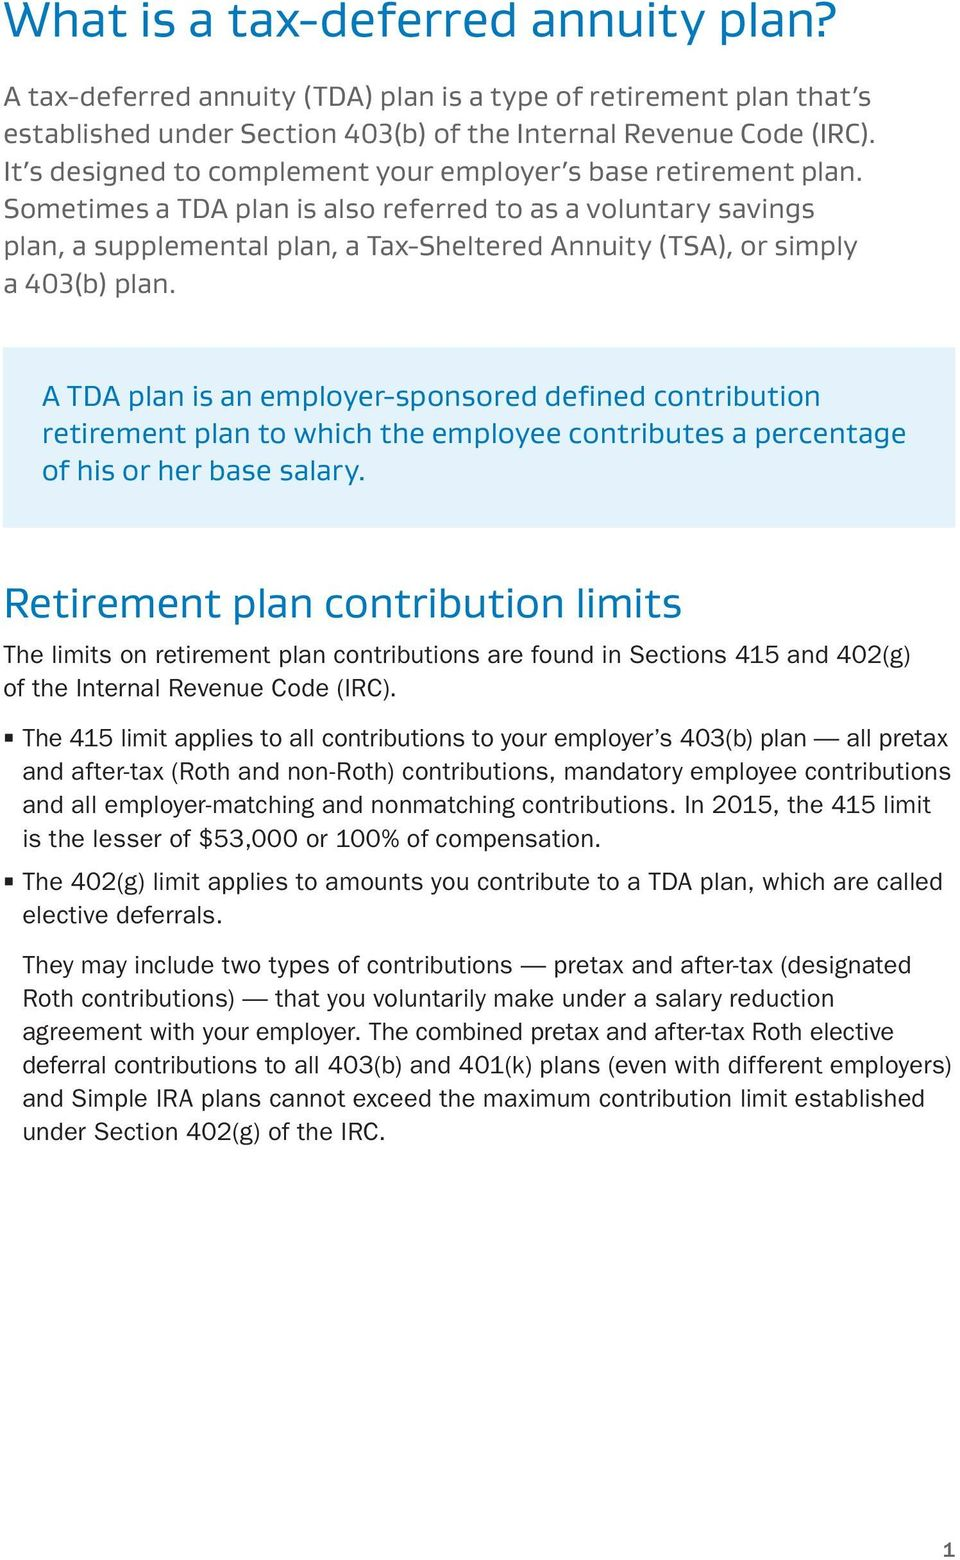 Sometimes a TDA plan is also referred to as a voluntary savings plan, a supplemental plan, a Tax-Sheltered Annuity (TSA), or simply a 403(b) plan.